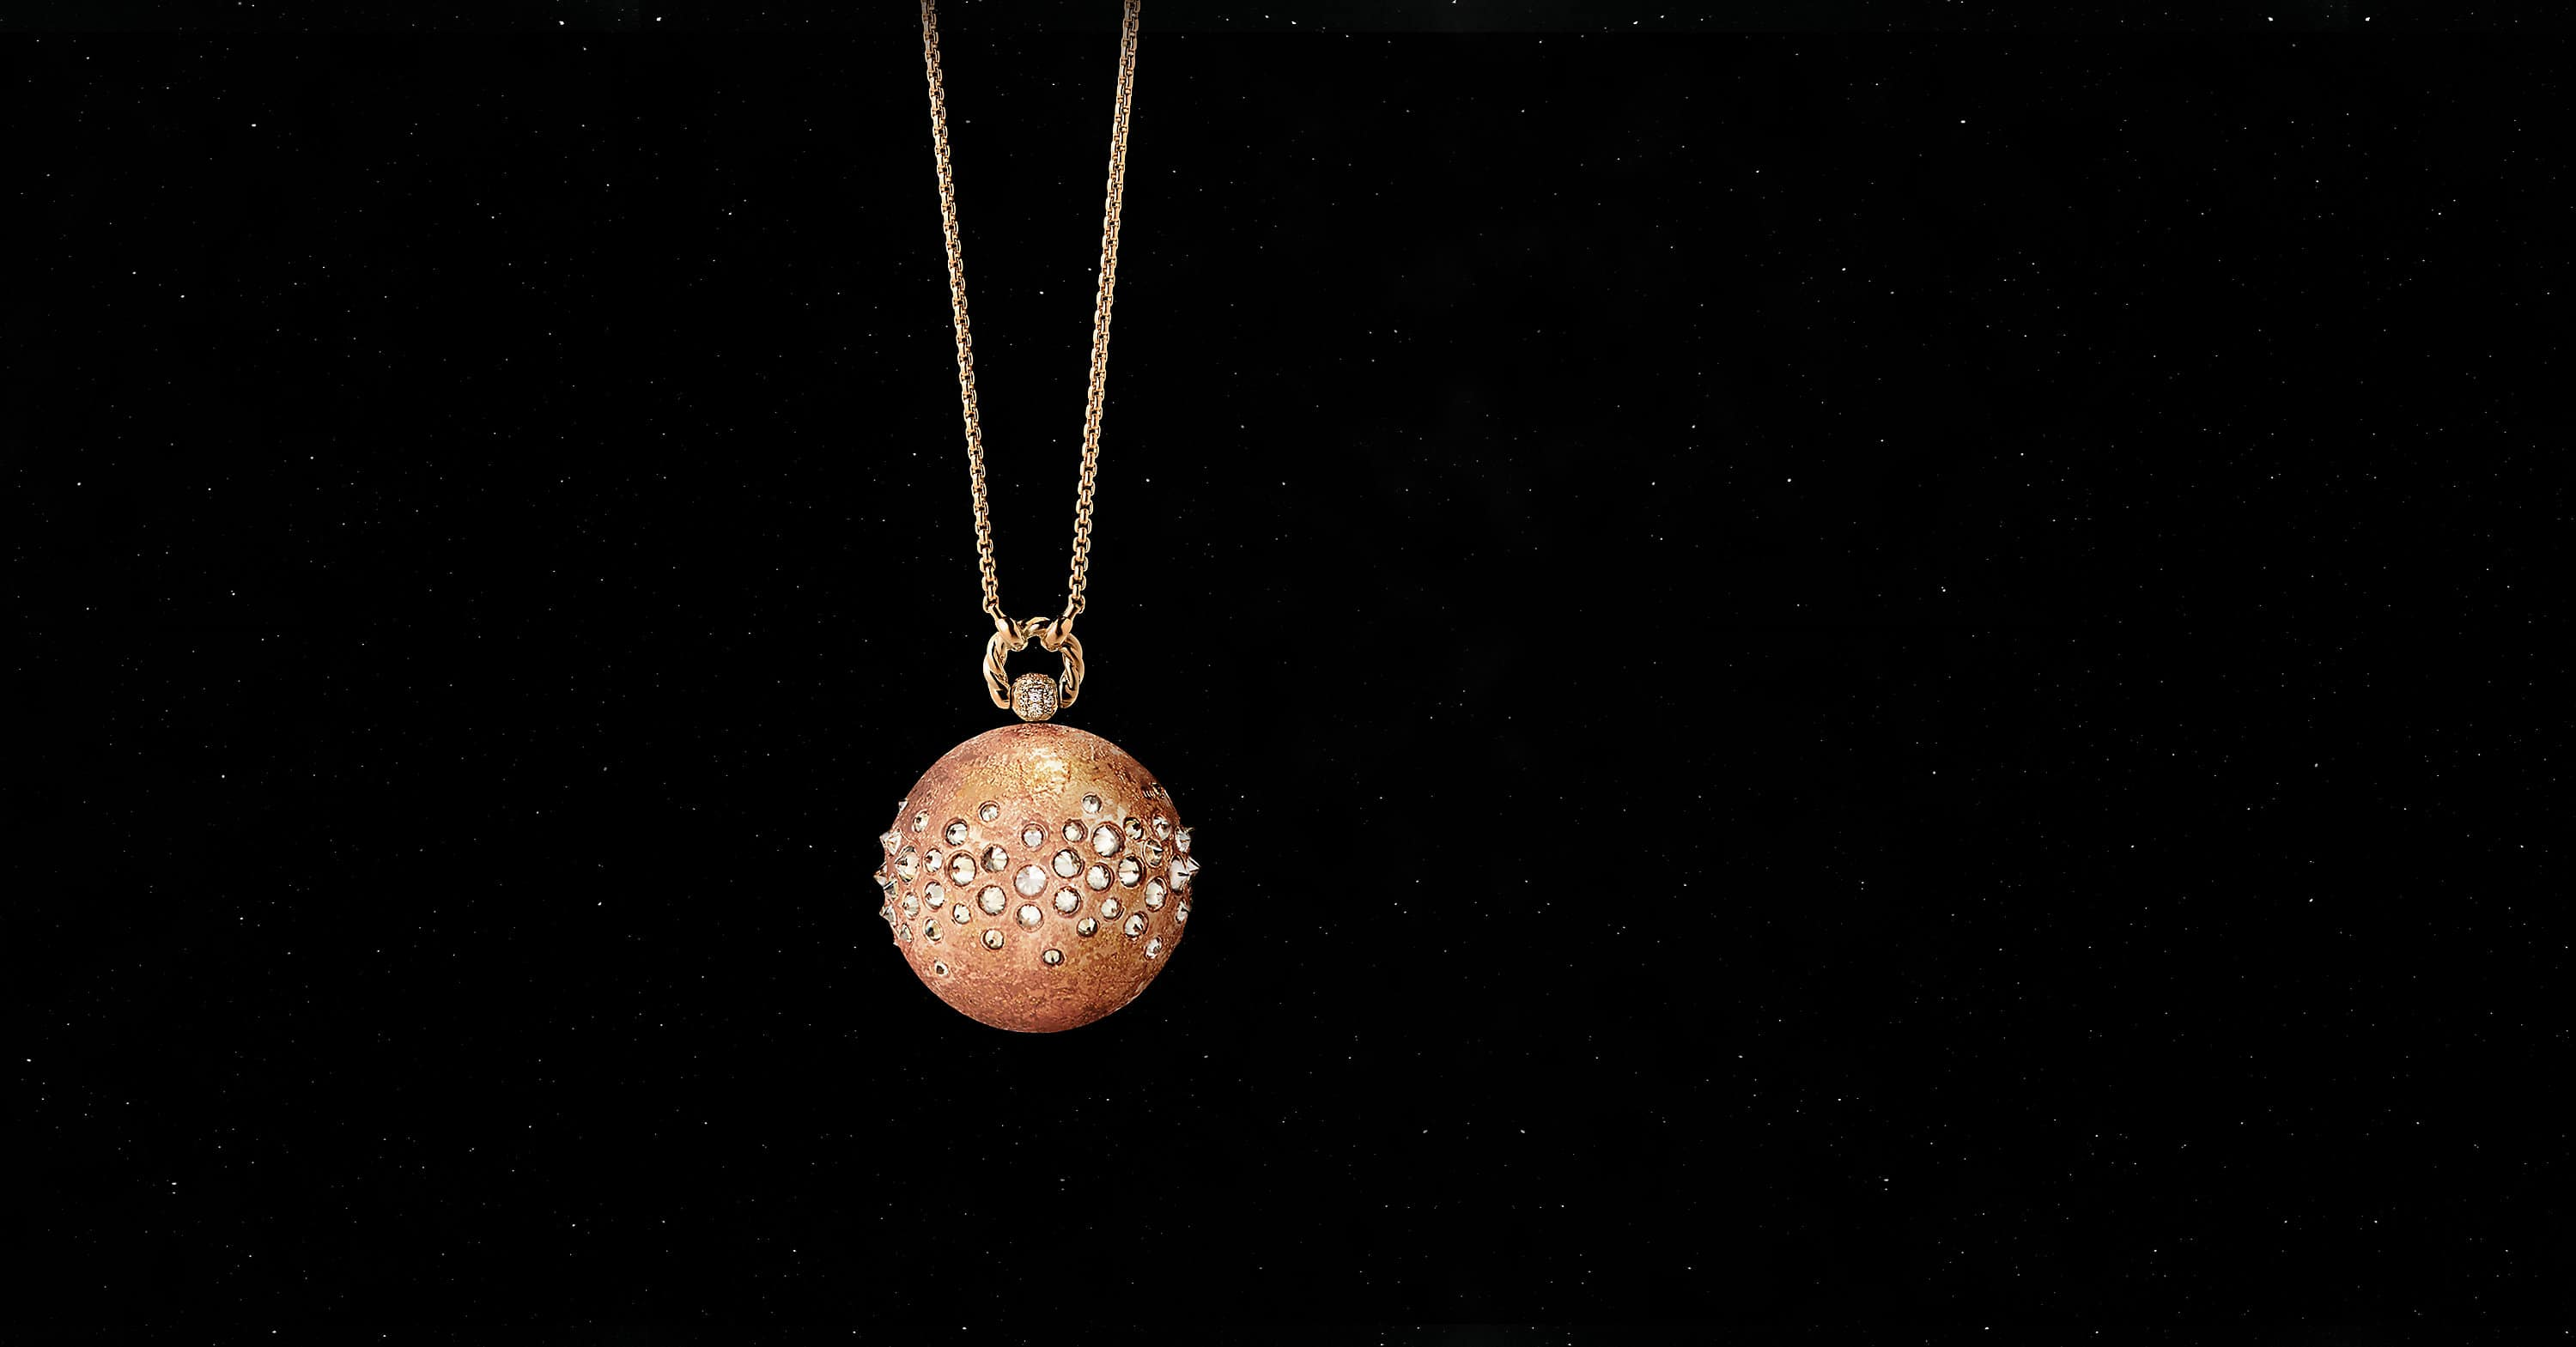 Solari Mars Pendant Necklace in 18K Rose Gold with Pavé